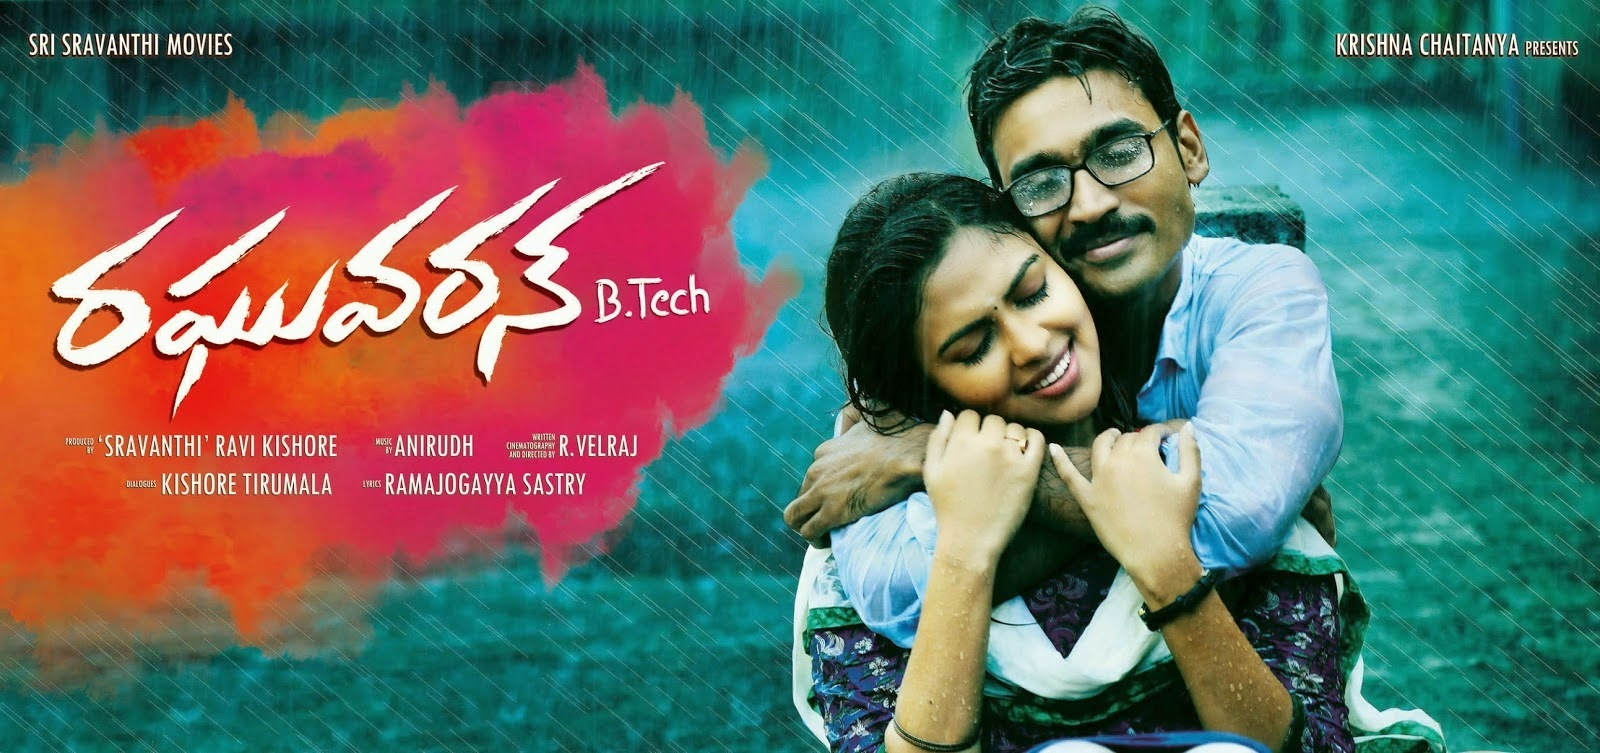 Raghuvaran B-Tech Movie Latest Posters